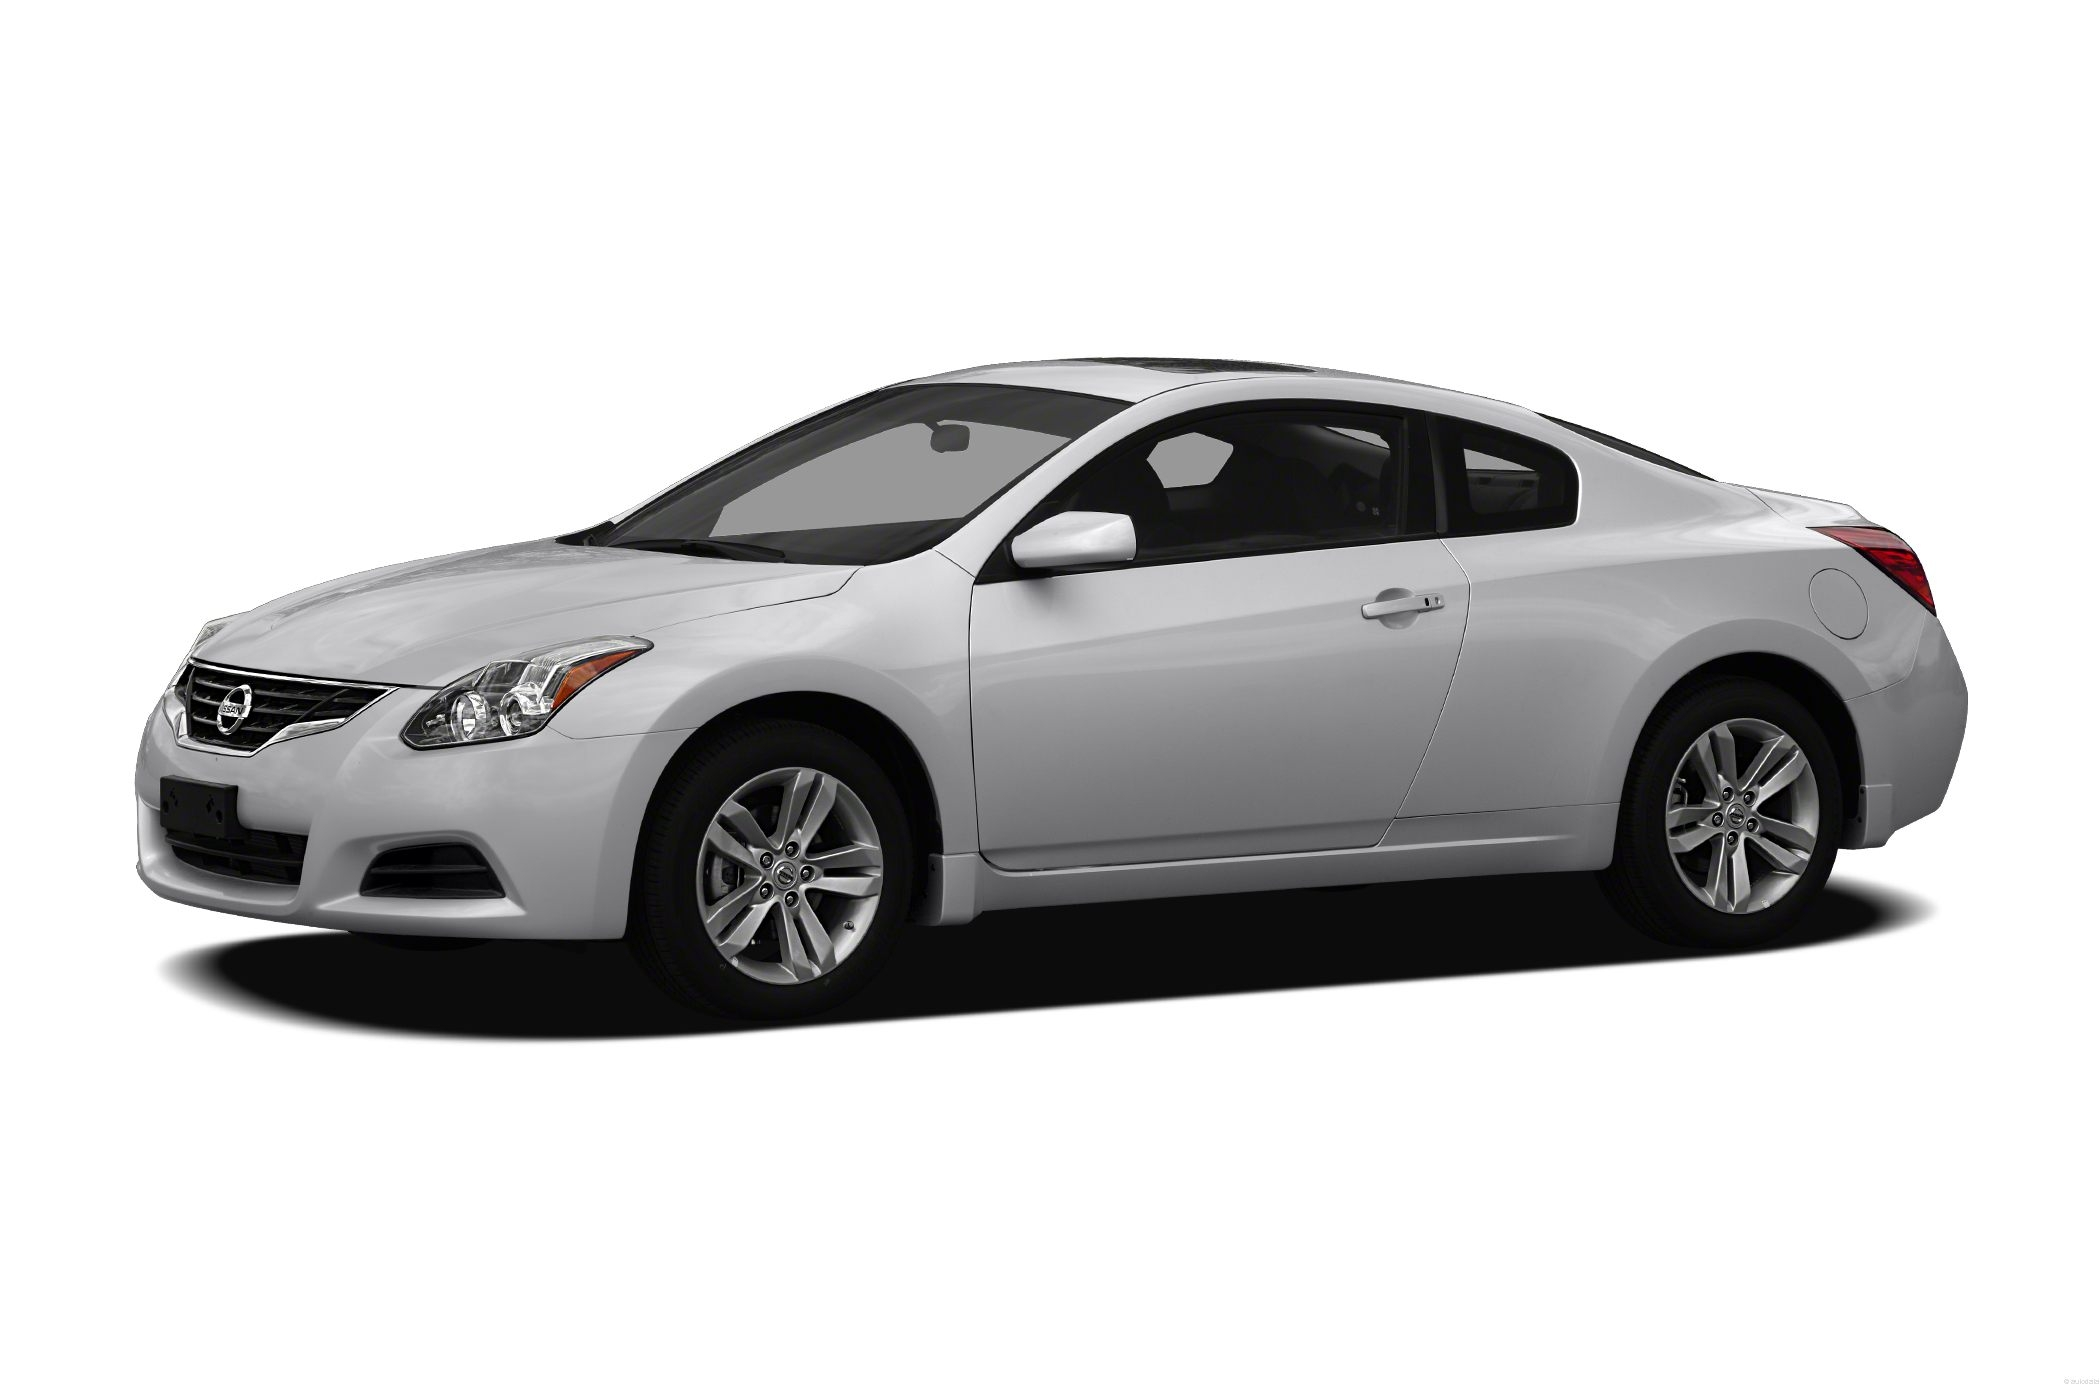 new 2015 nissan altima price photos reviews safety zeuz home nissan altima invoice price